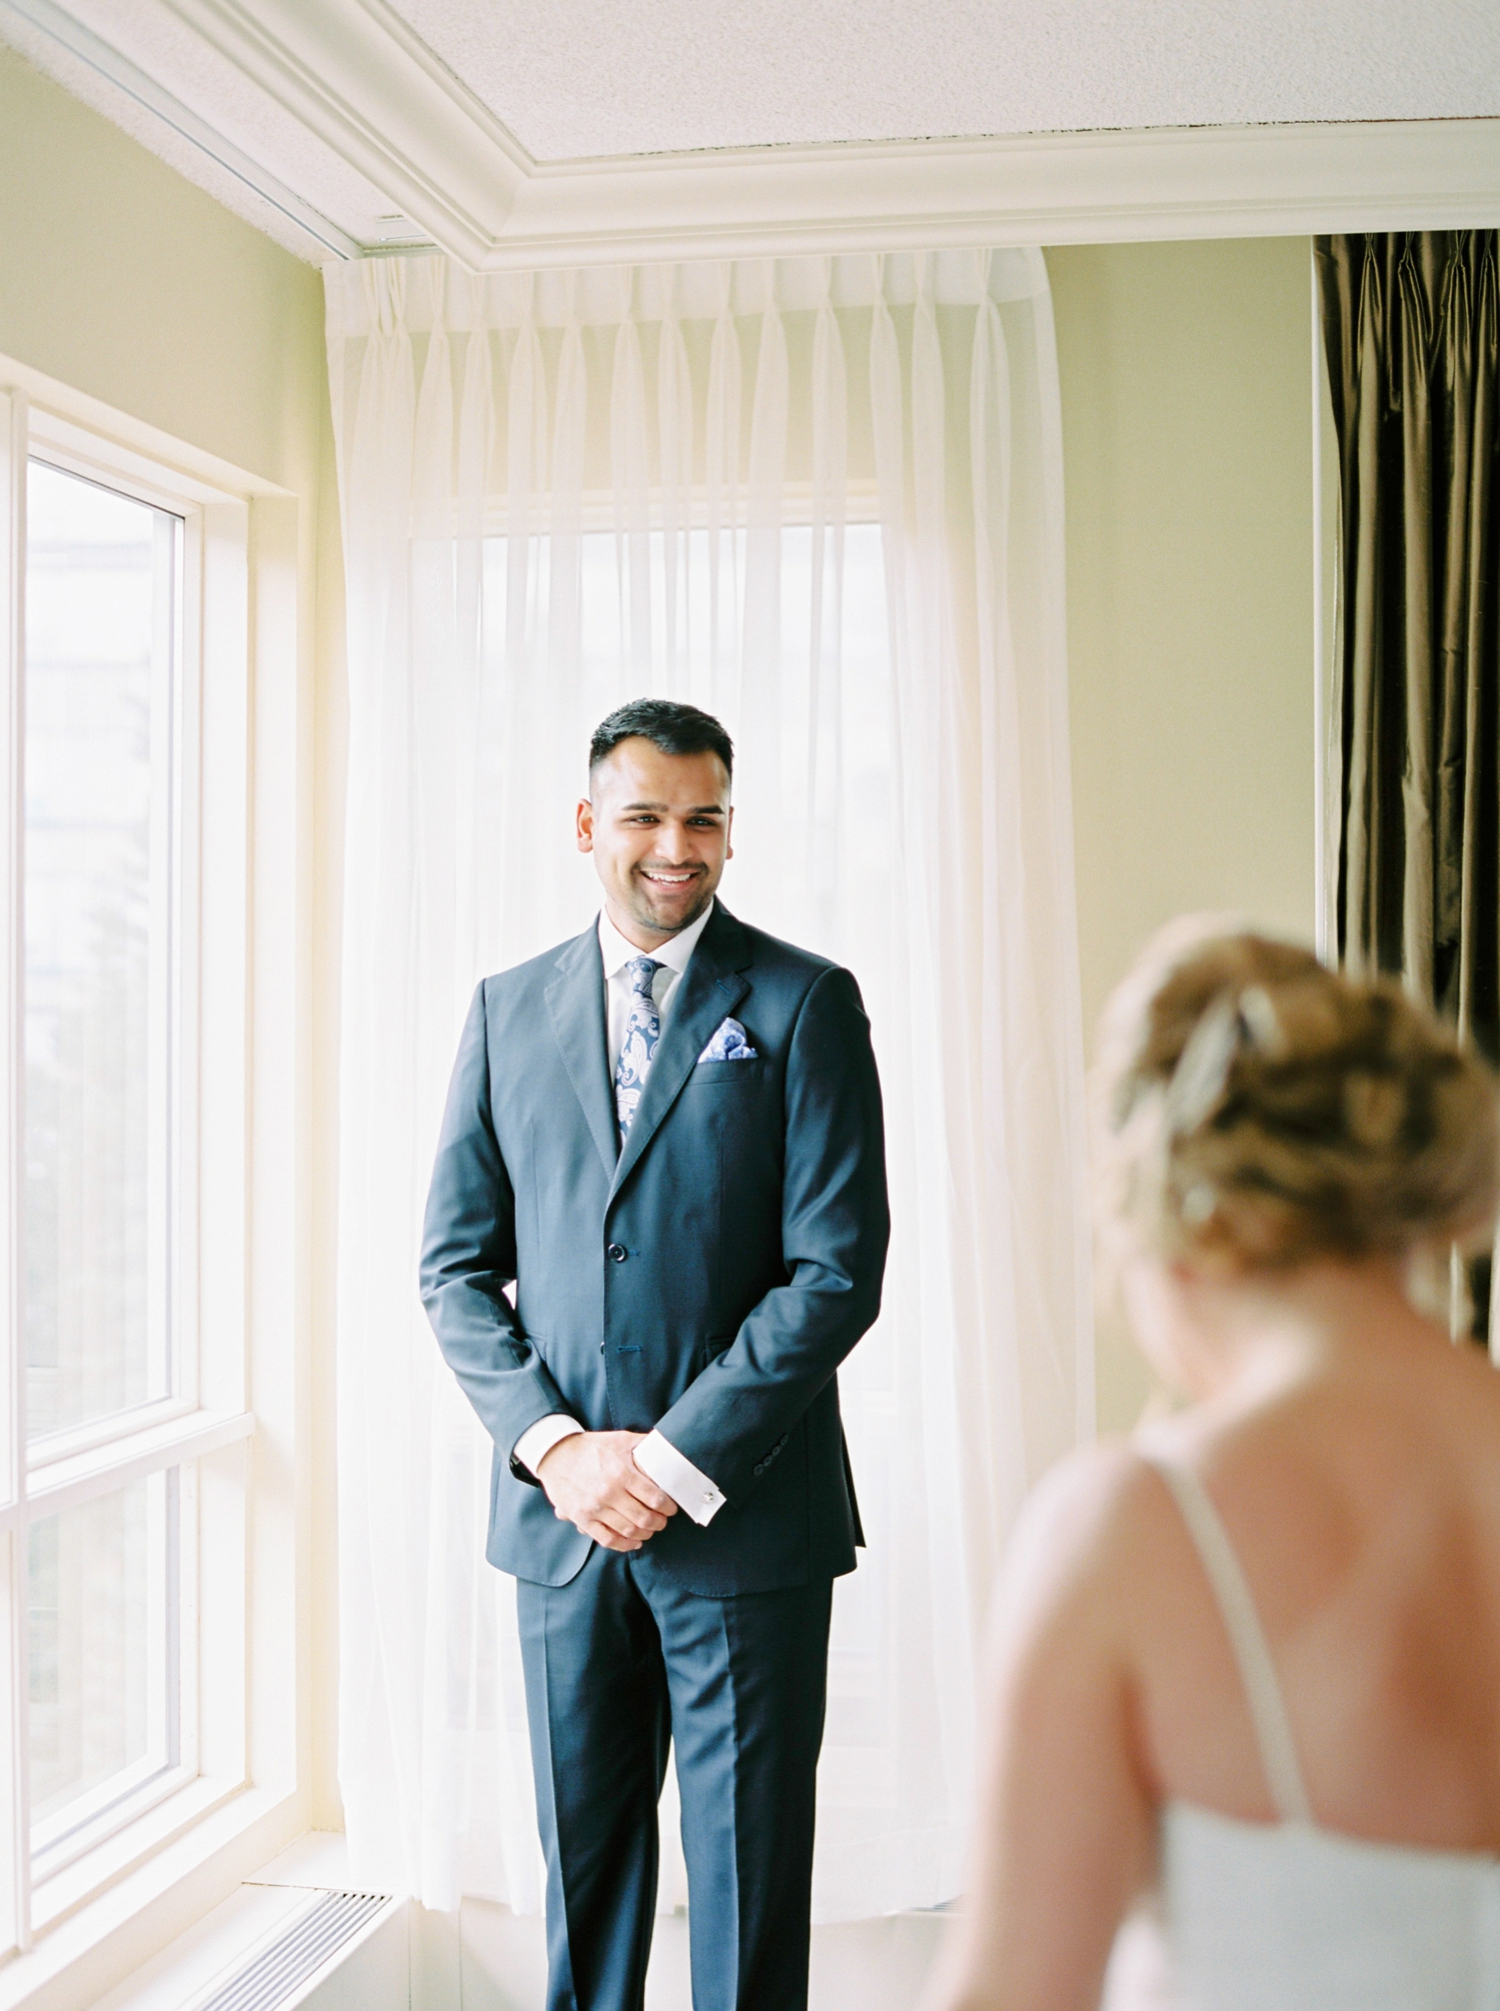 Calgary wedding photographers | banff wedding photographers | fine art film | Justine Milton Photography | wedding vows | elopement photographers | bride and groom